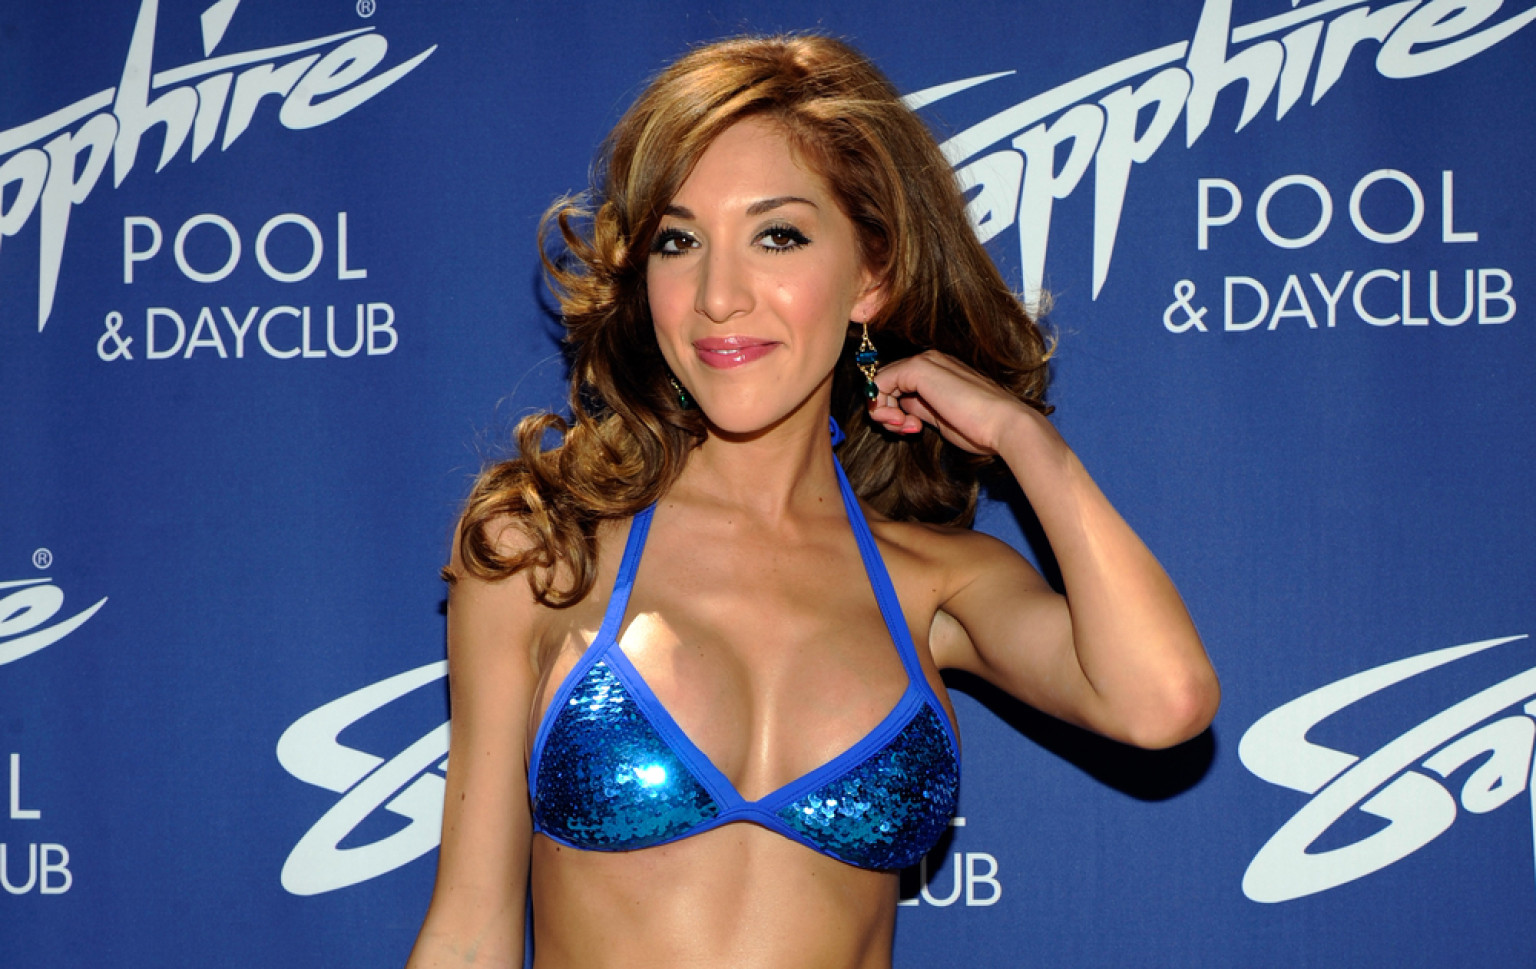 FARRAH-ABRAHAM-PORN-VIDEO-ROYALTIES-facebook.jpg